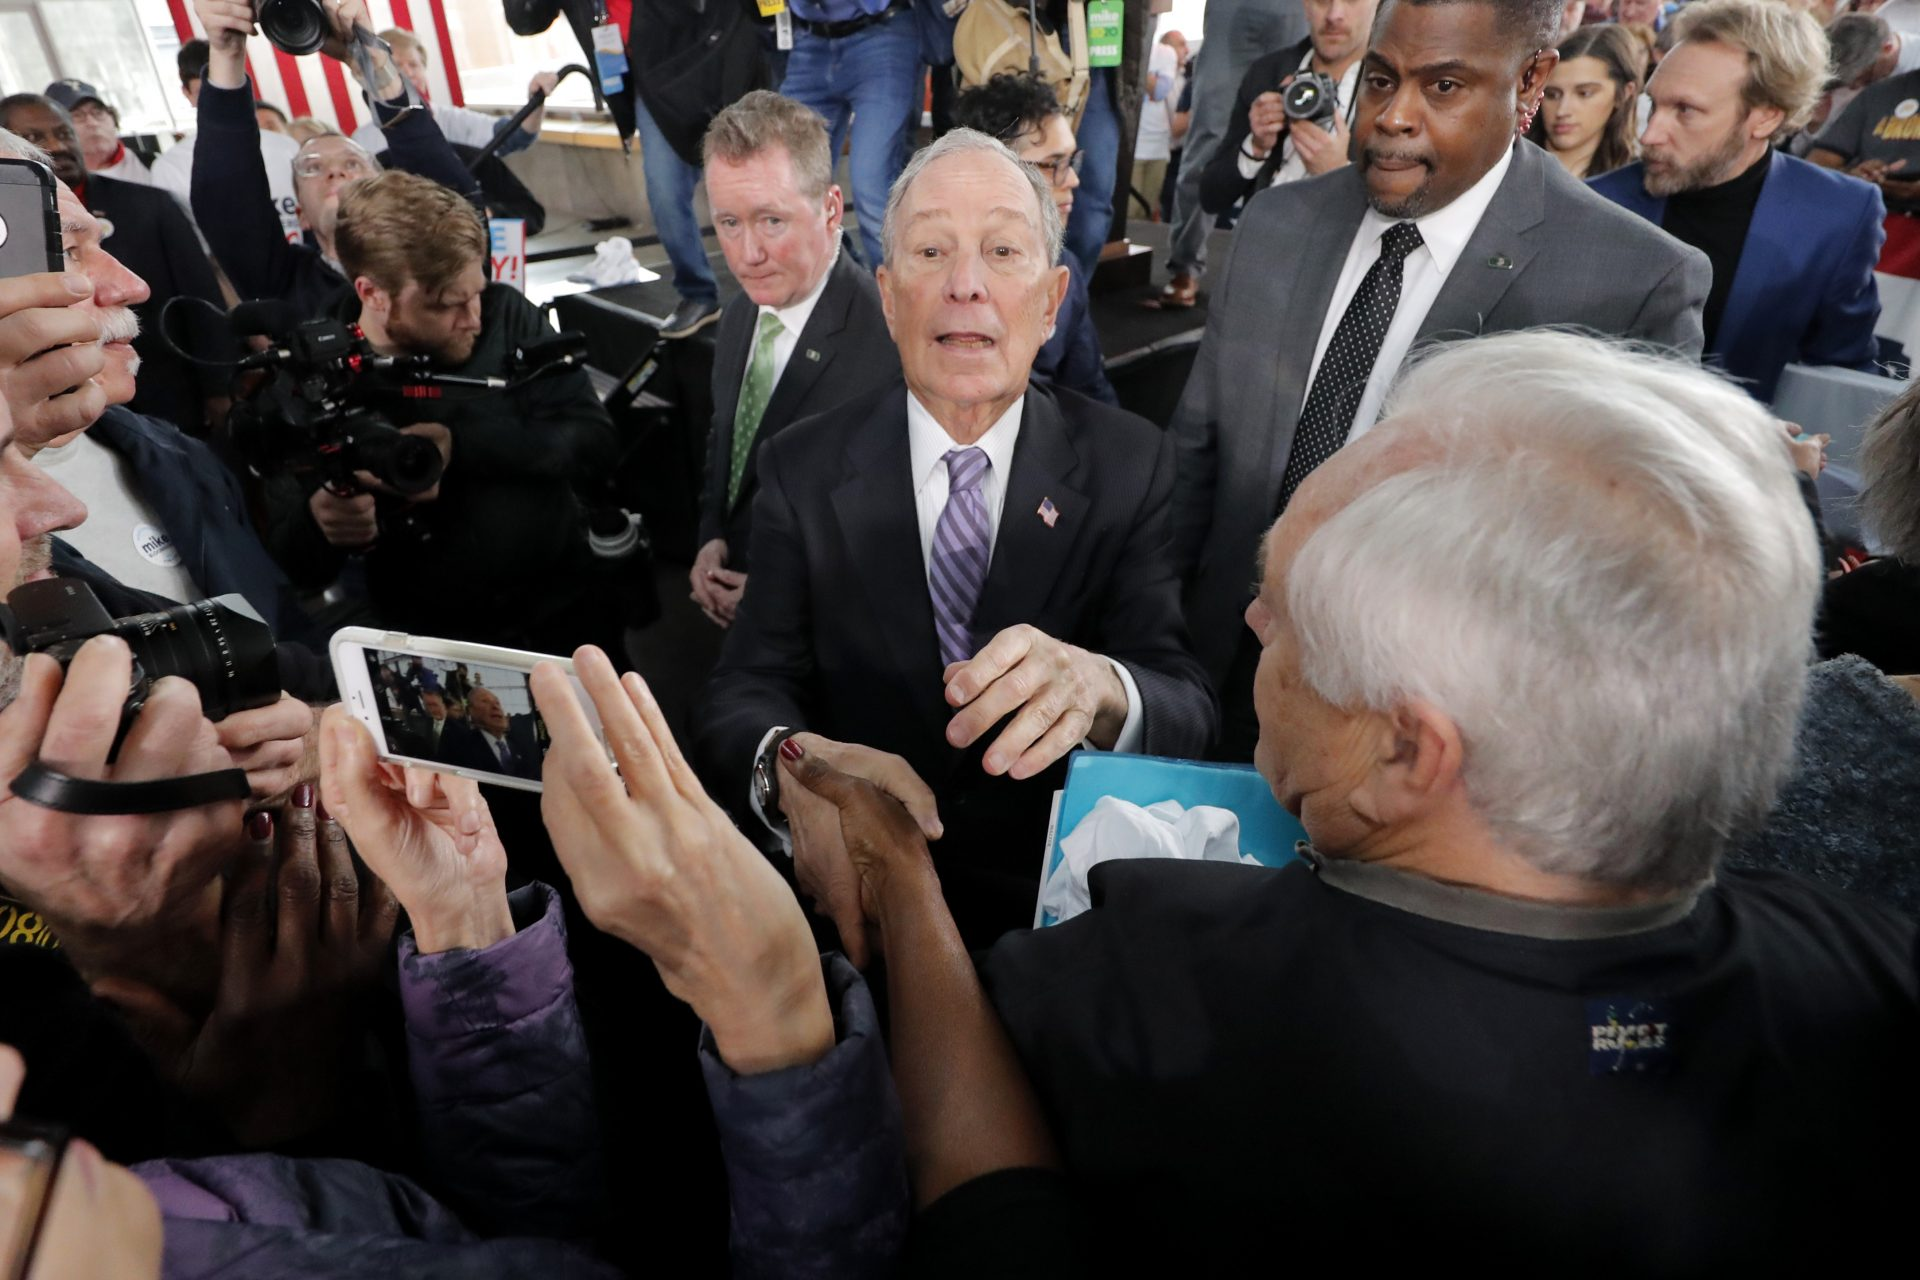 Democratic presidential candidate and former New York City Mayor Mike Bloomberg greets supporters after speaking at a campaign event in Raleigh, N.C., Thursday, Feb. 13, 2020.